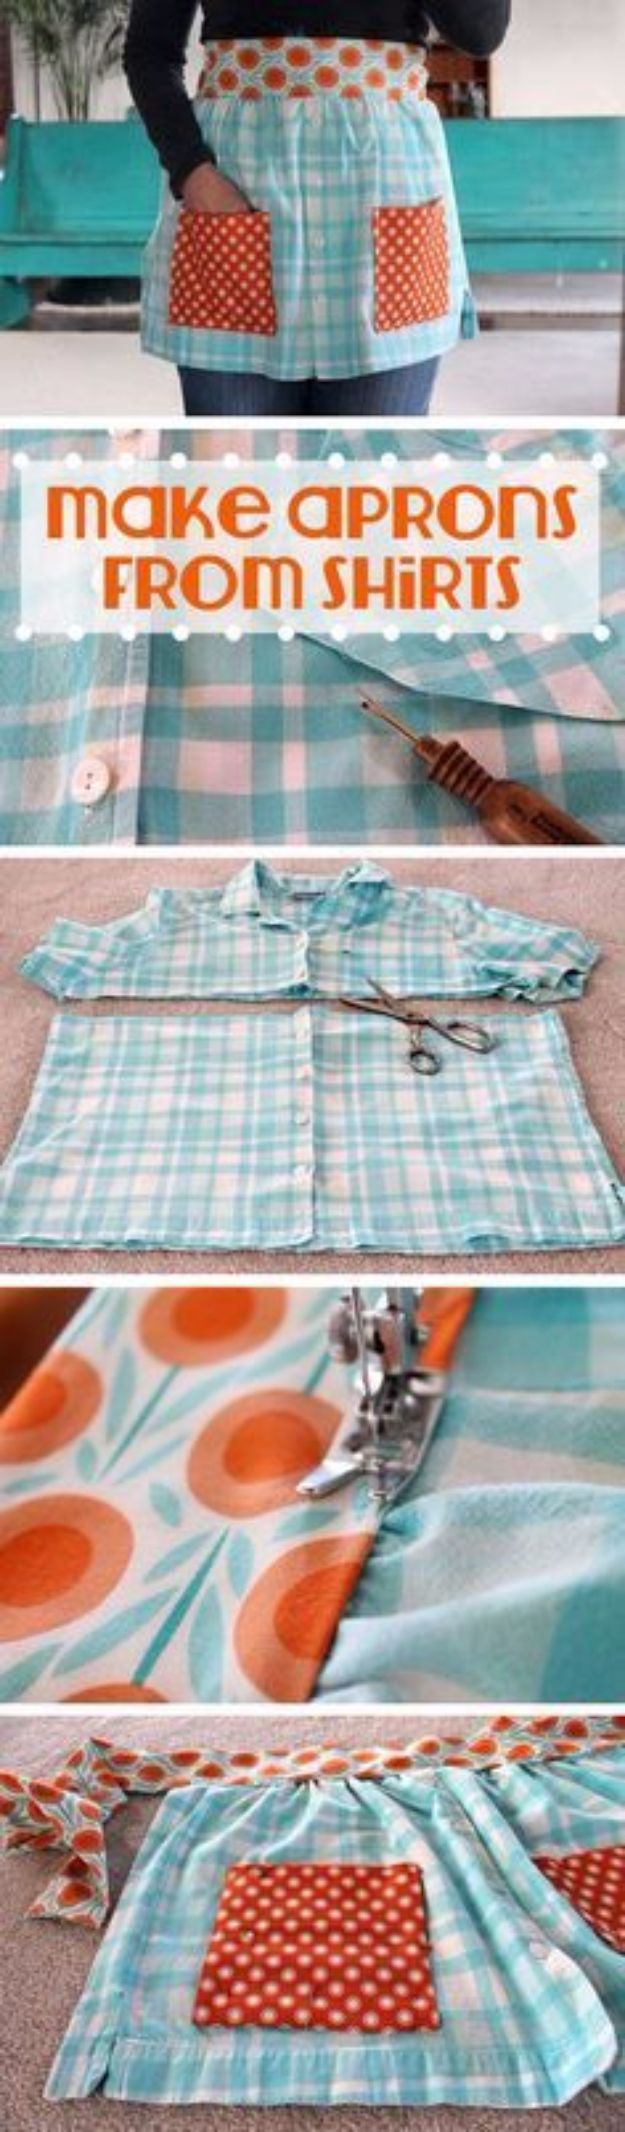 32 Great Things To Sew For Your Kitchen | Diy sewing projects ...